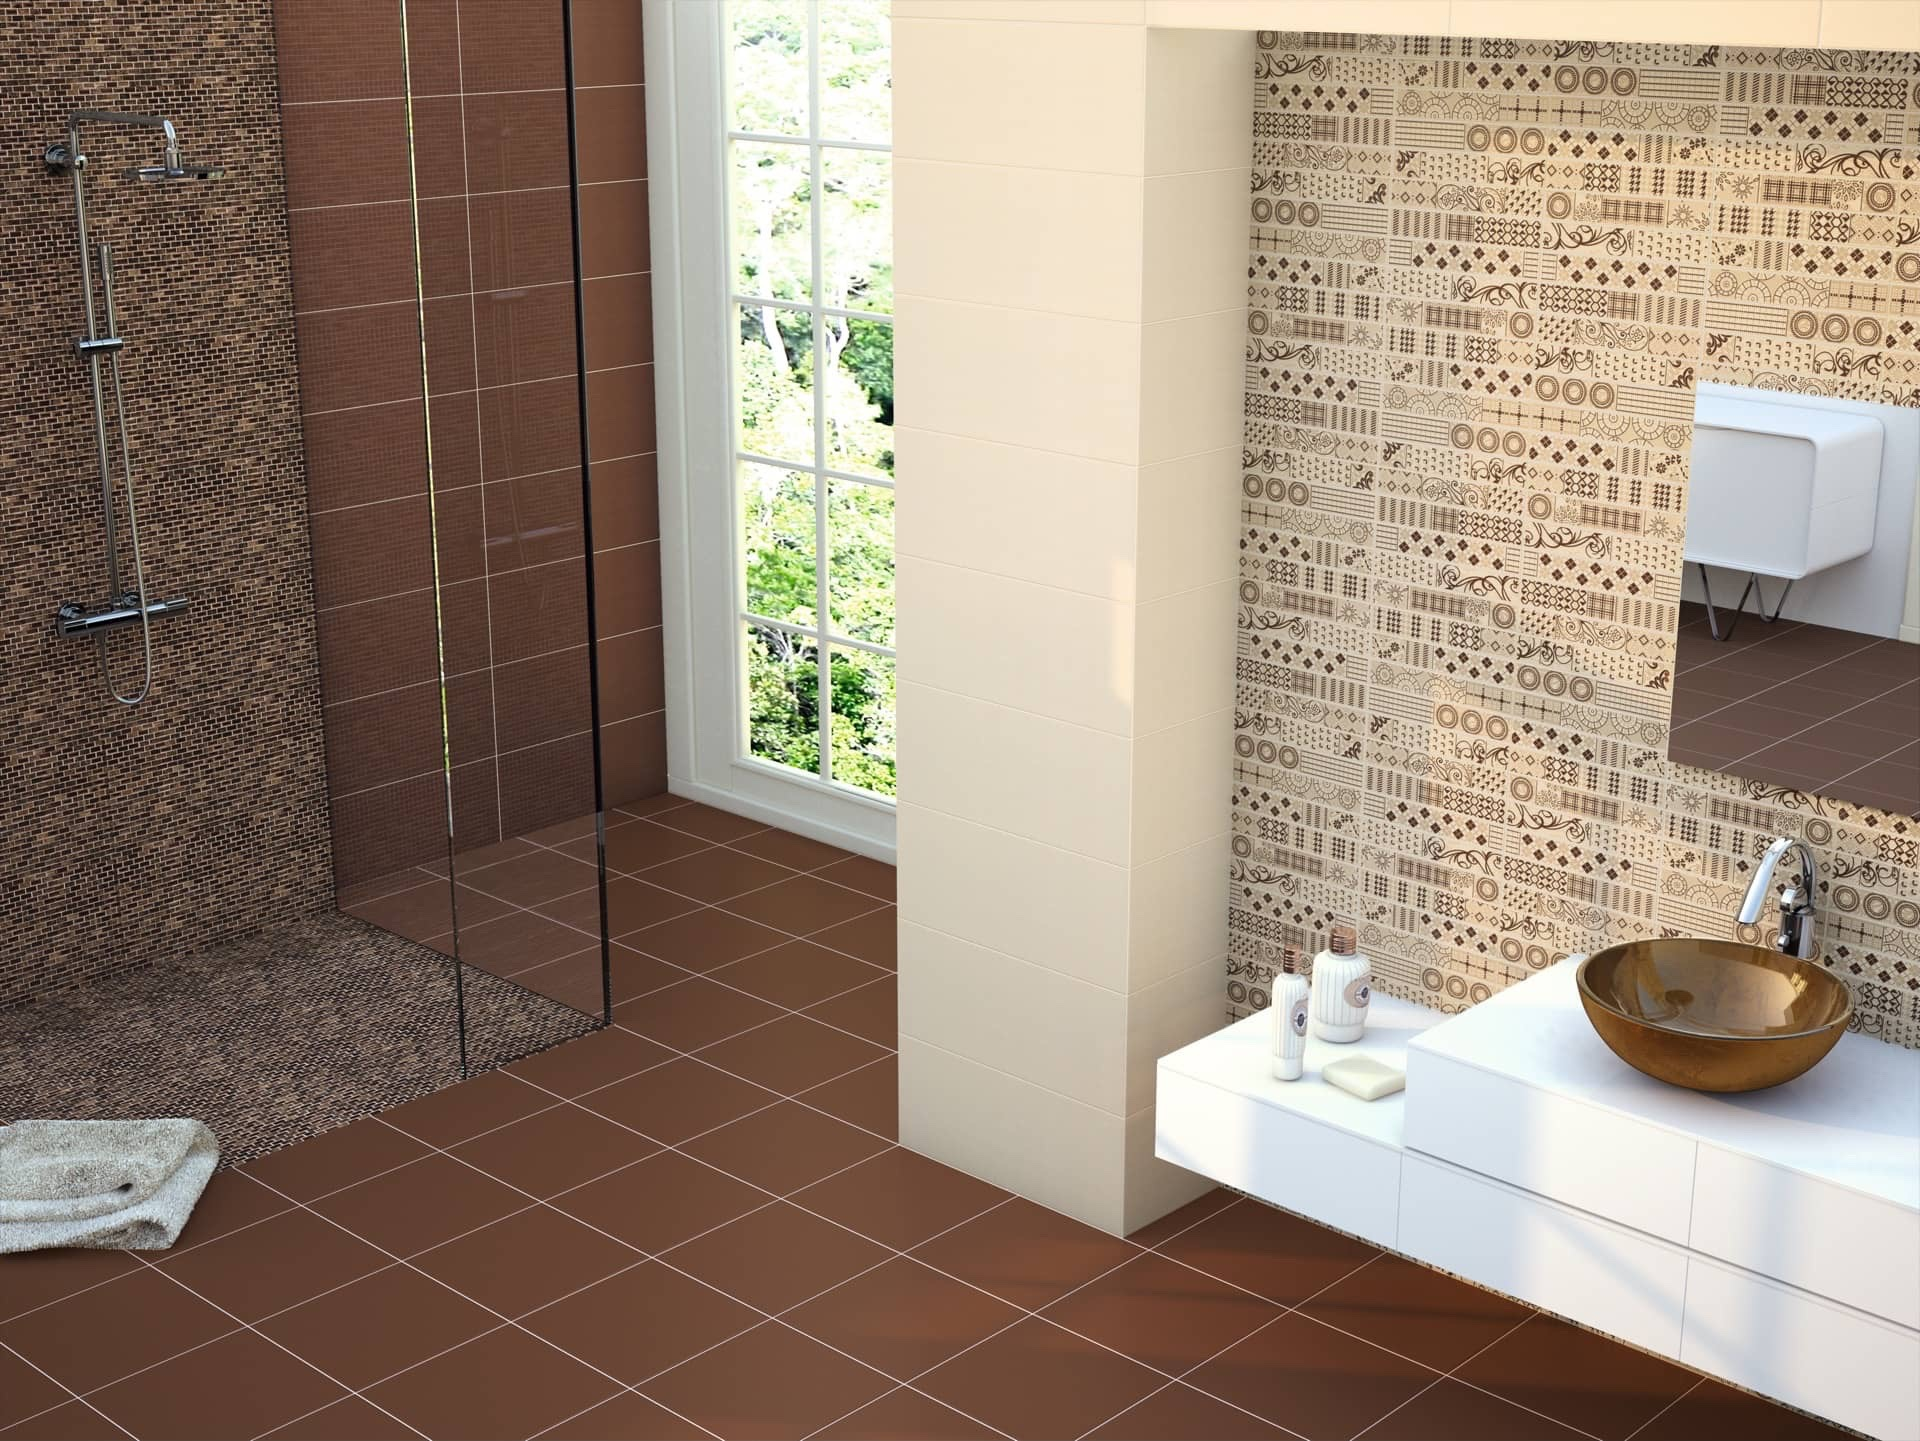 amb open beige chocolate decor sintesis beige mosaico melmac copia